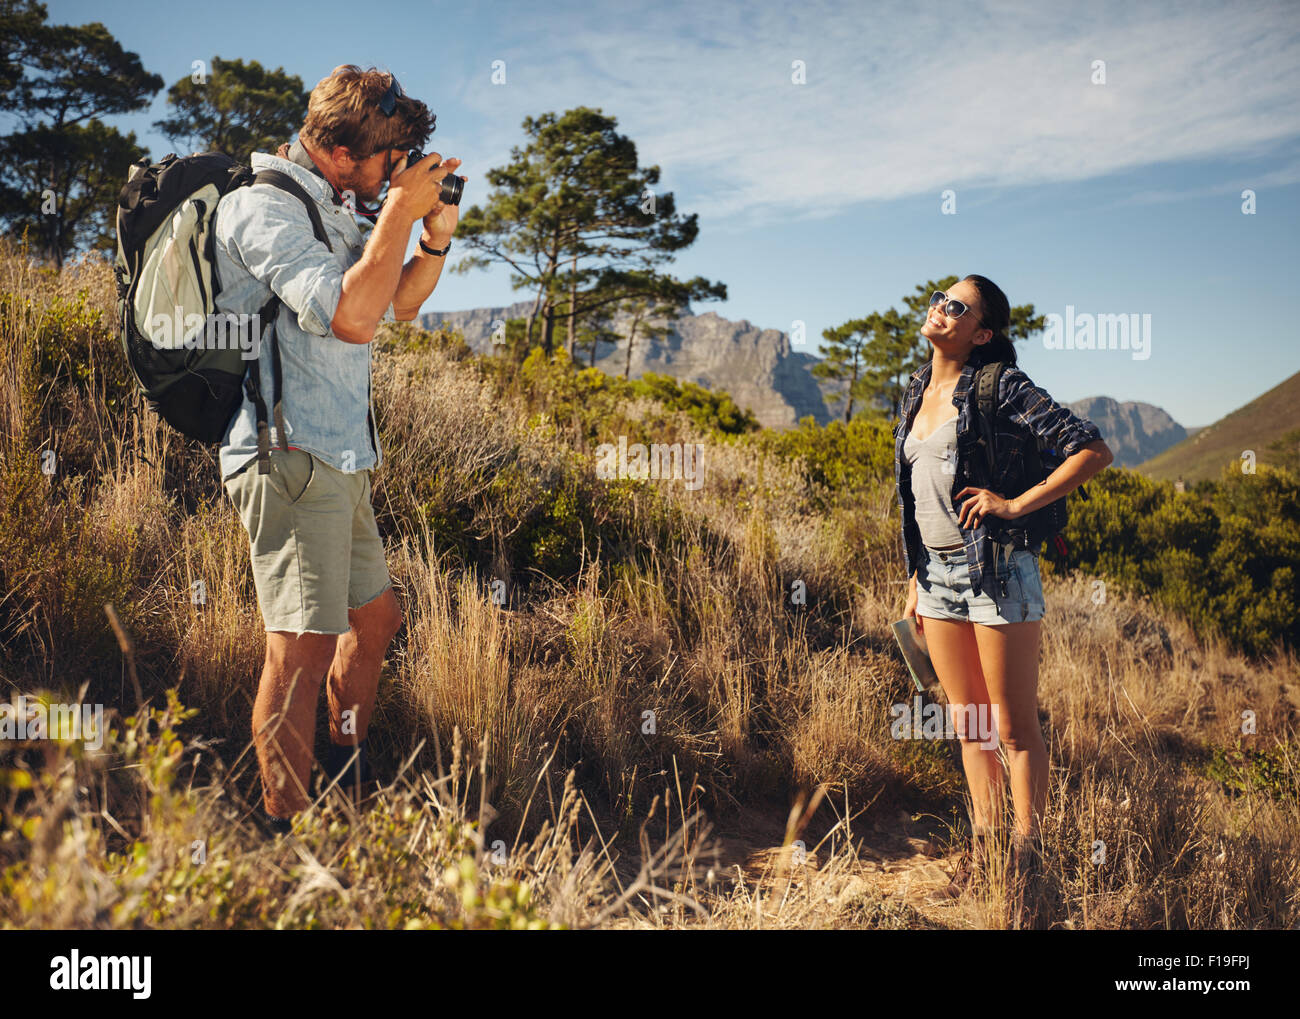 Outdoor shot of tourist couple hiking and taking photos with camera. Man taking picture of girlfriend in countryside. - Stock Image